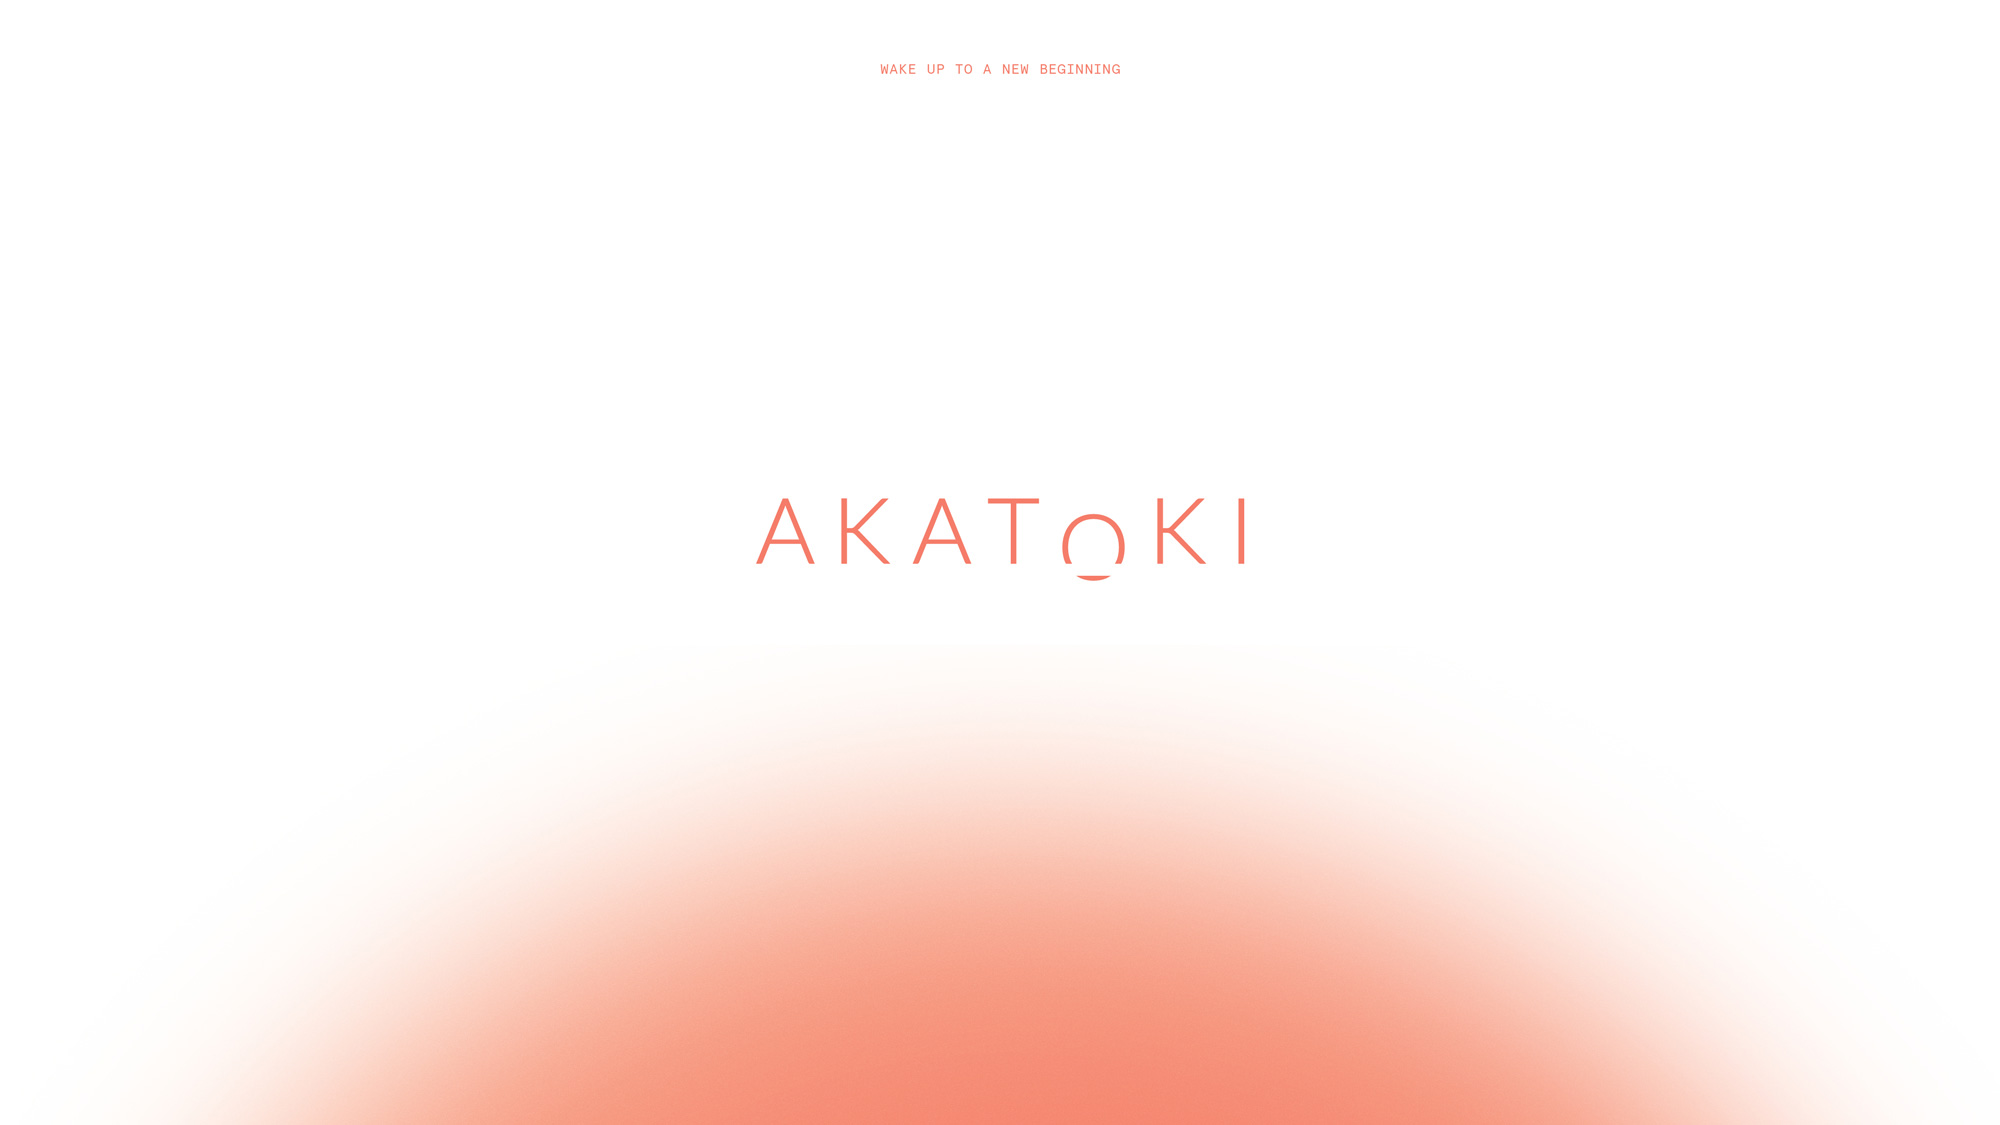 New Logo and Identity for The Prince Akatoki by Interbrand